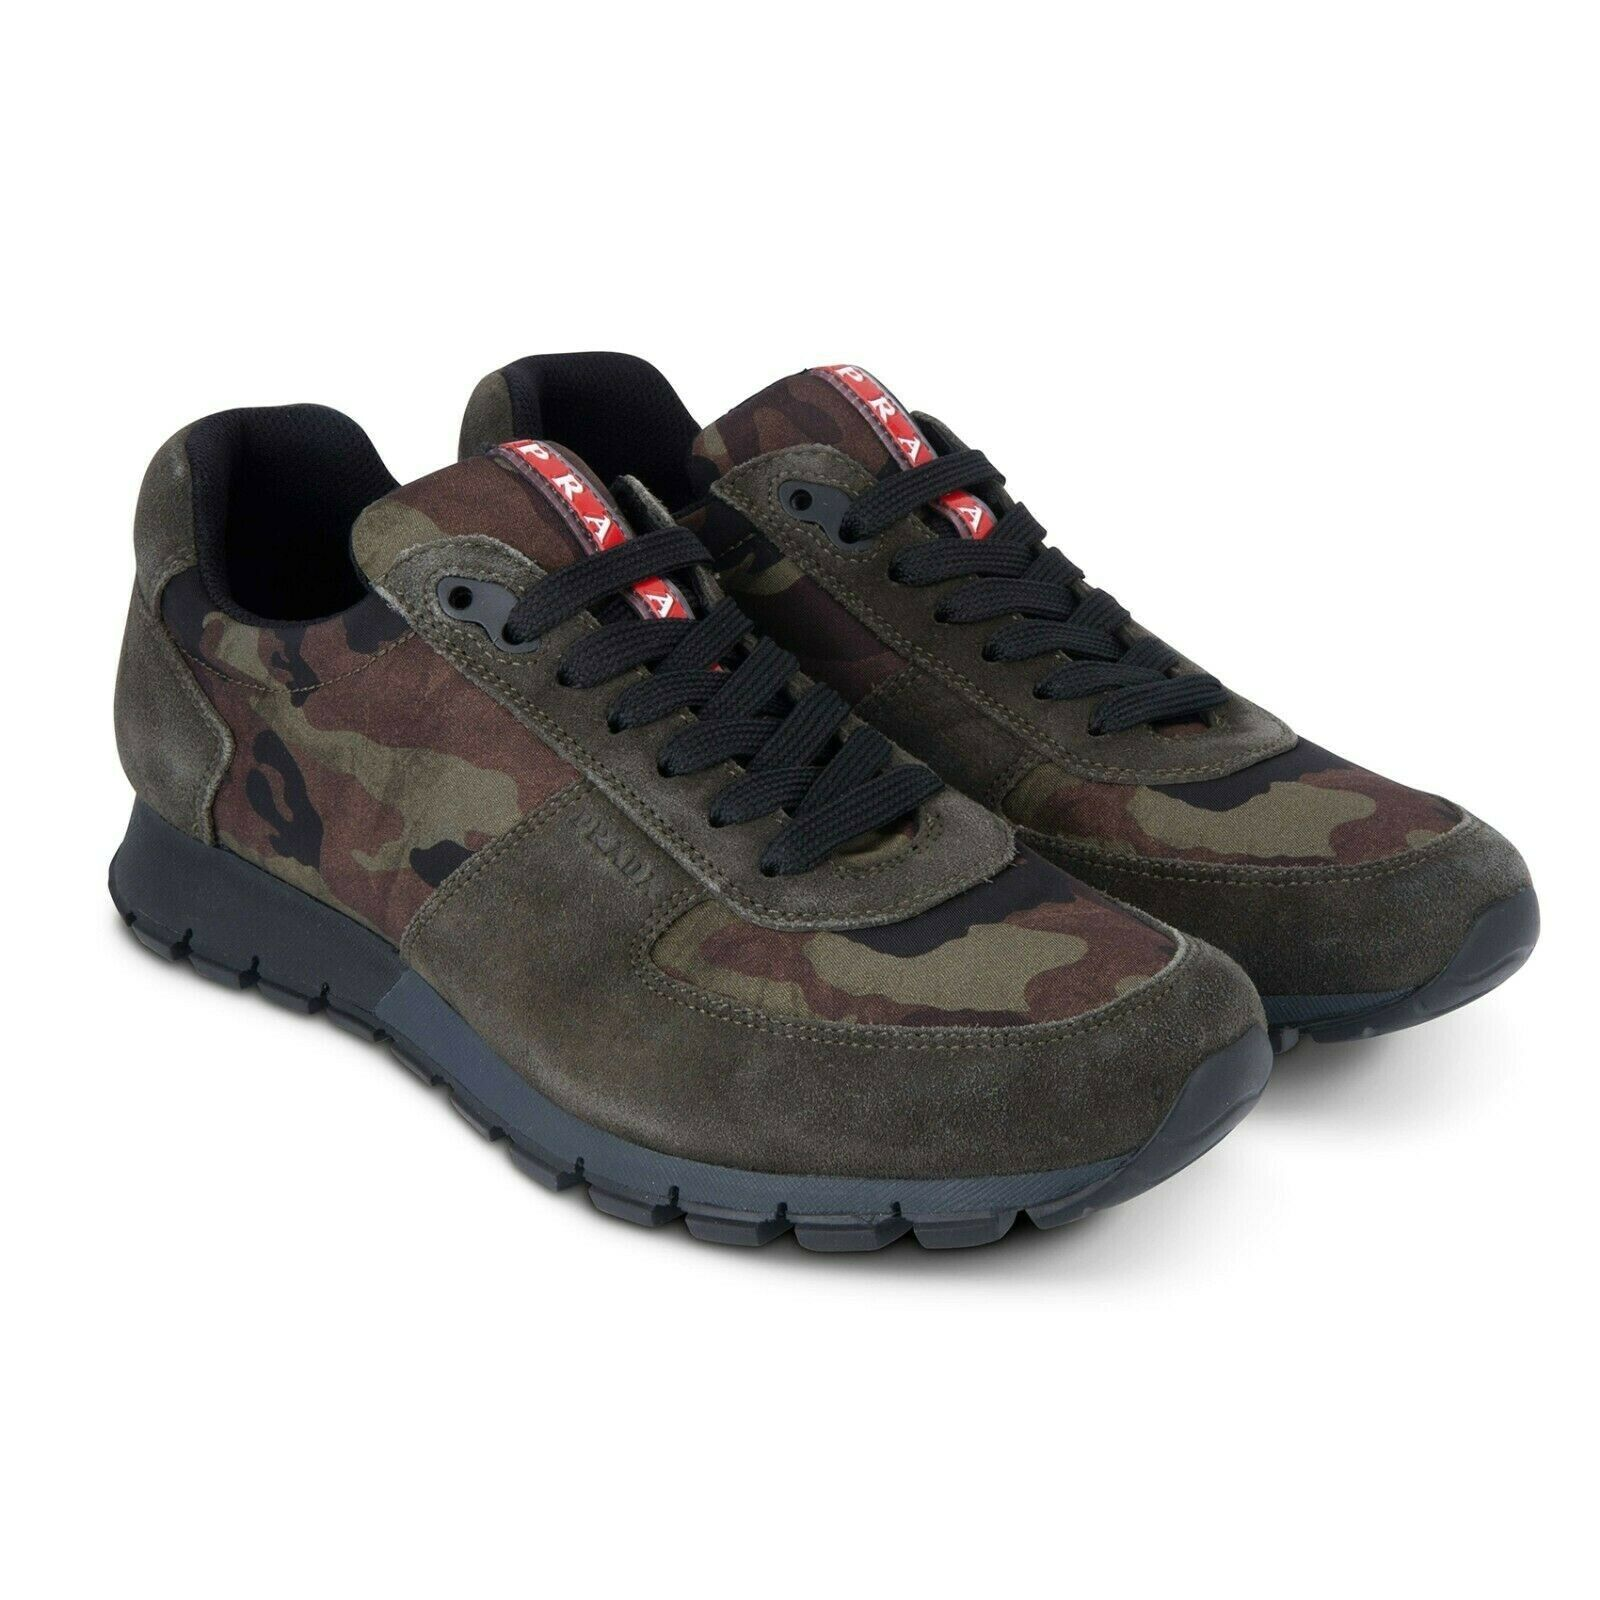 buy online dc315 760e5 Men s Prada Runners Camo Trainers Size US 9 New With Box Brand Khaki  ntclph5246-Athletic Shoes